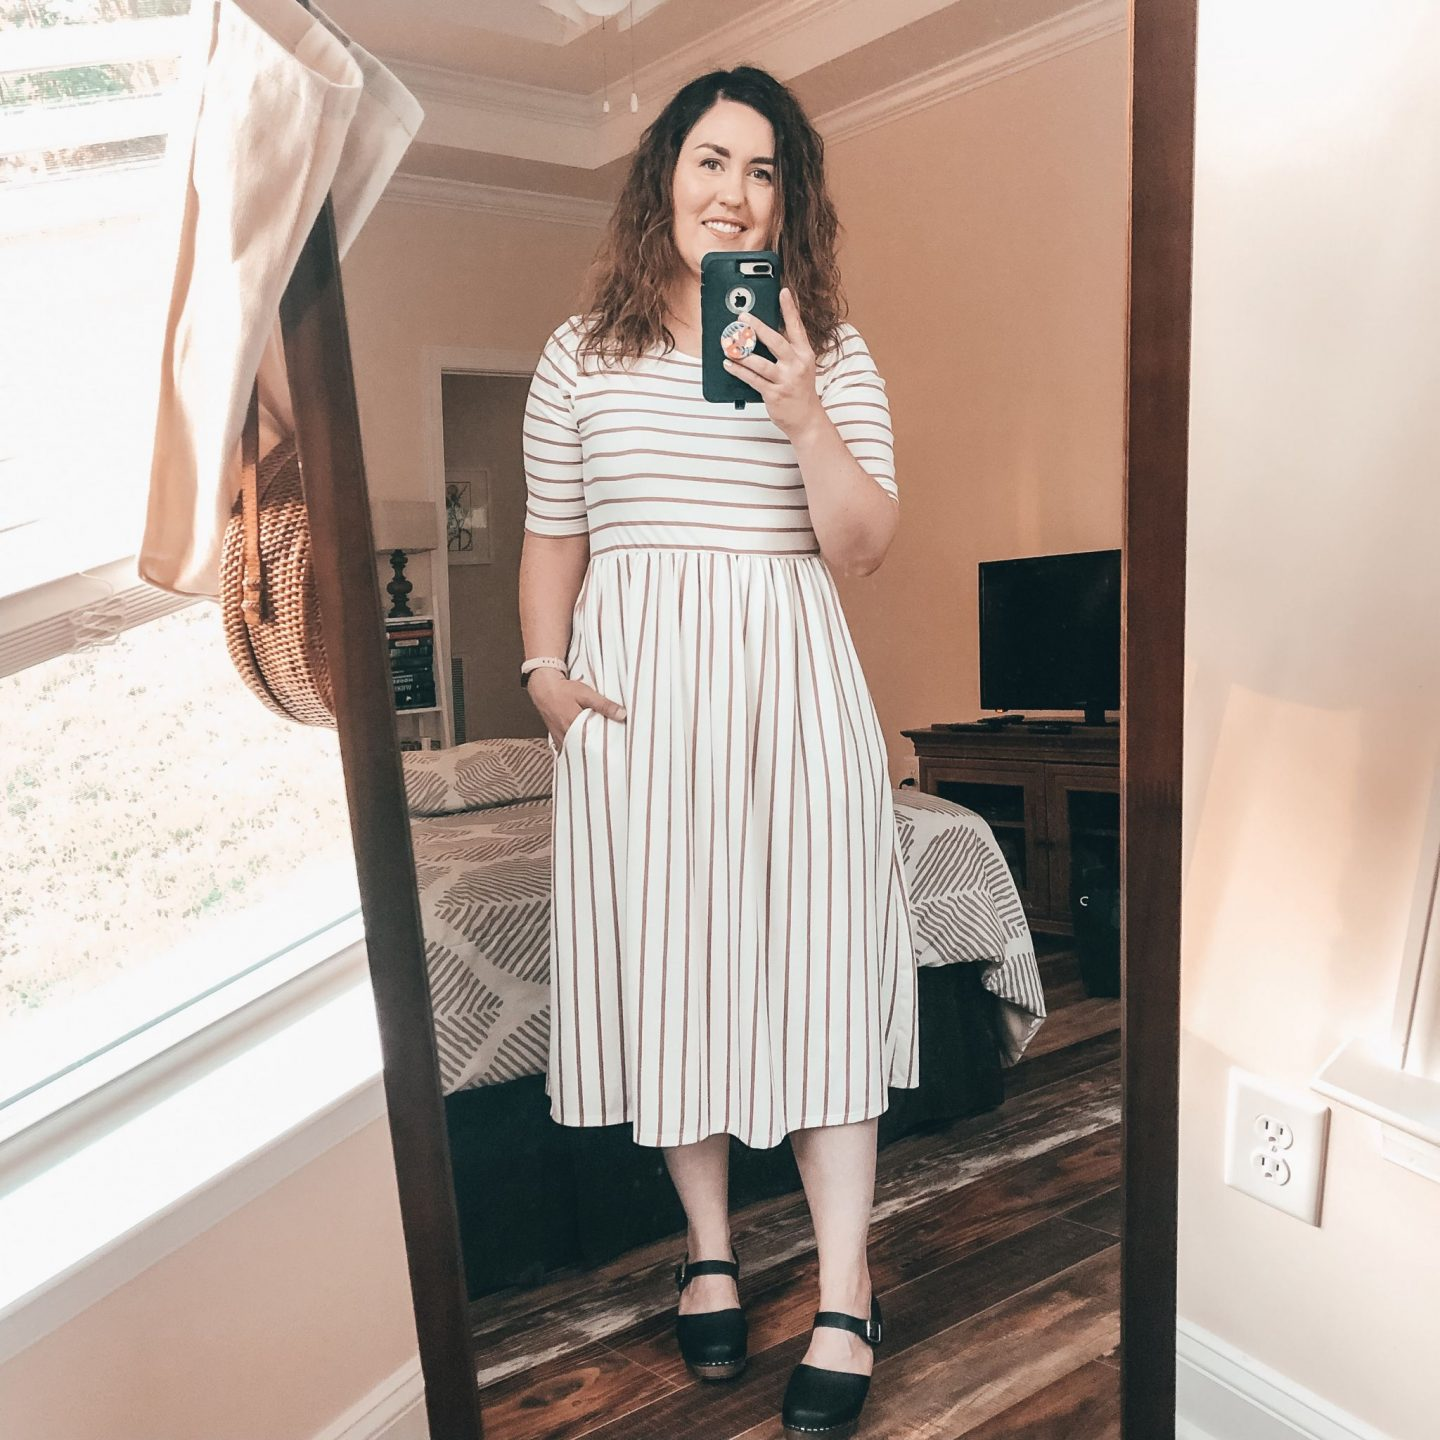 NC blogger Rebecca Lately shares her latest summer outfits round up. She has a little bit of everything, from dresses to jeans.